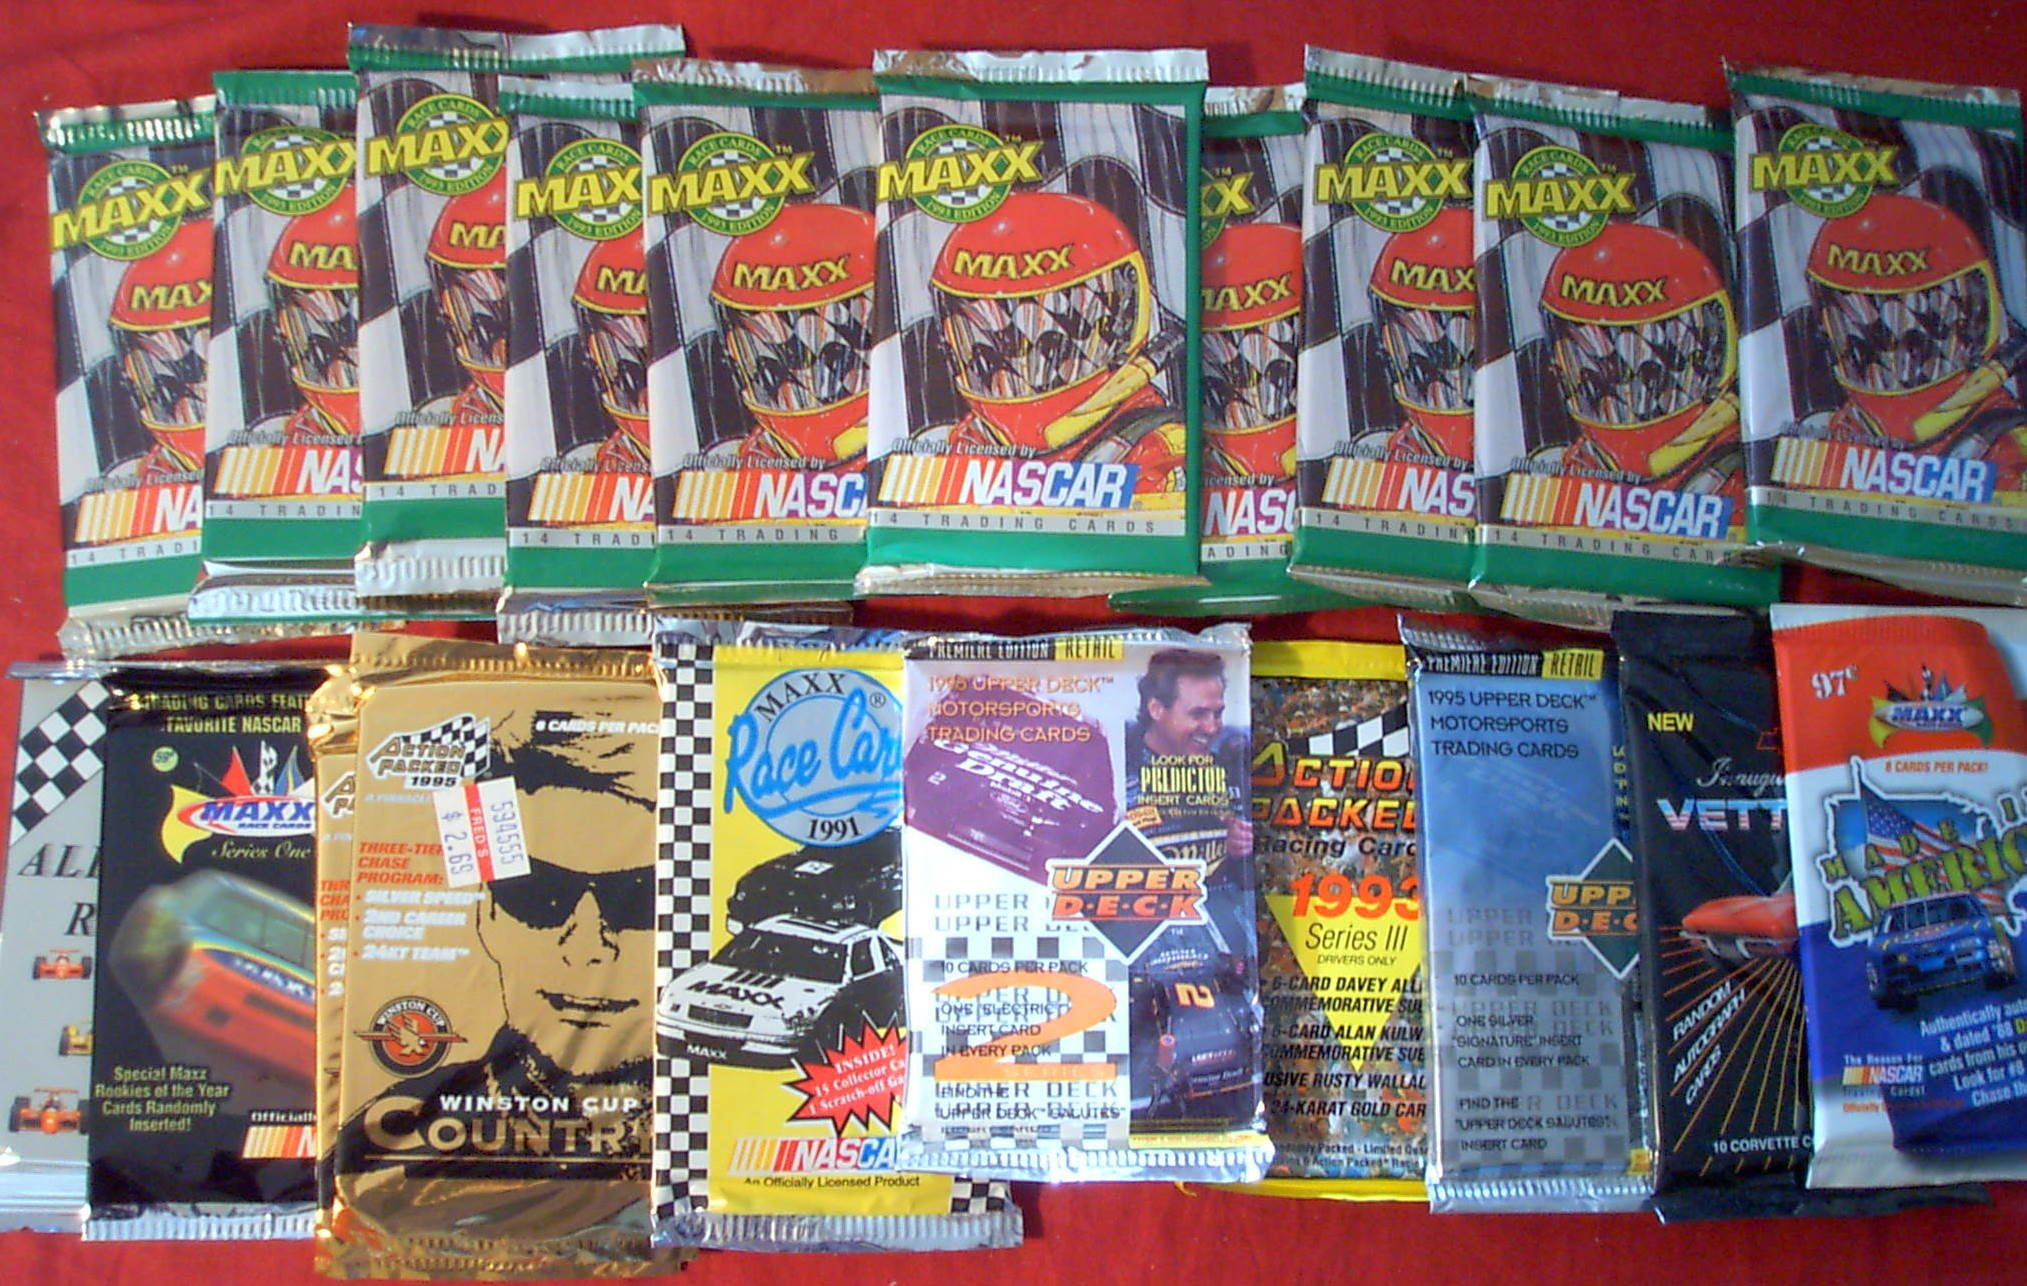 20 Original Unopened Packs of RACING NASCAR Cards (1991-1996) - Look for Dale Earnhardt. Jimmy Johnson. Mark Martin. Labonte and Jeff Gordon cards, special inserts, and more!! (PACKS ARE FUN TO OPEN)